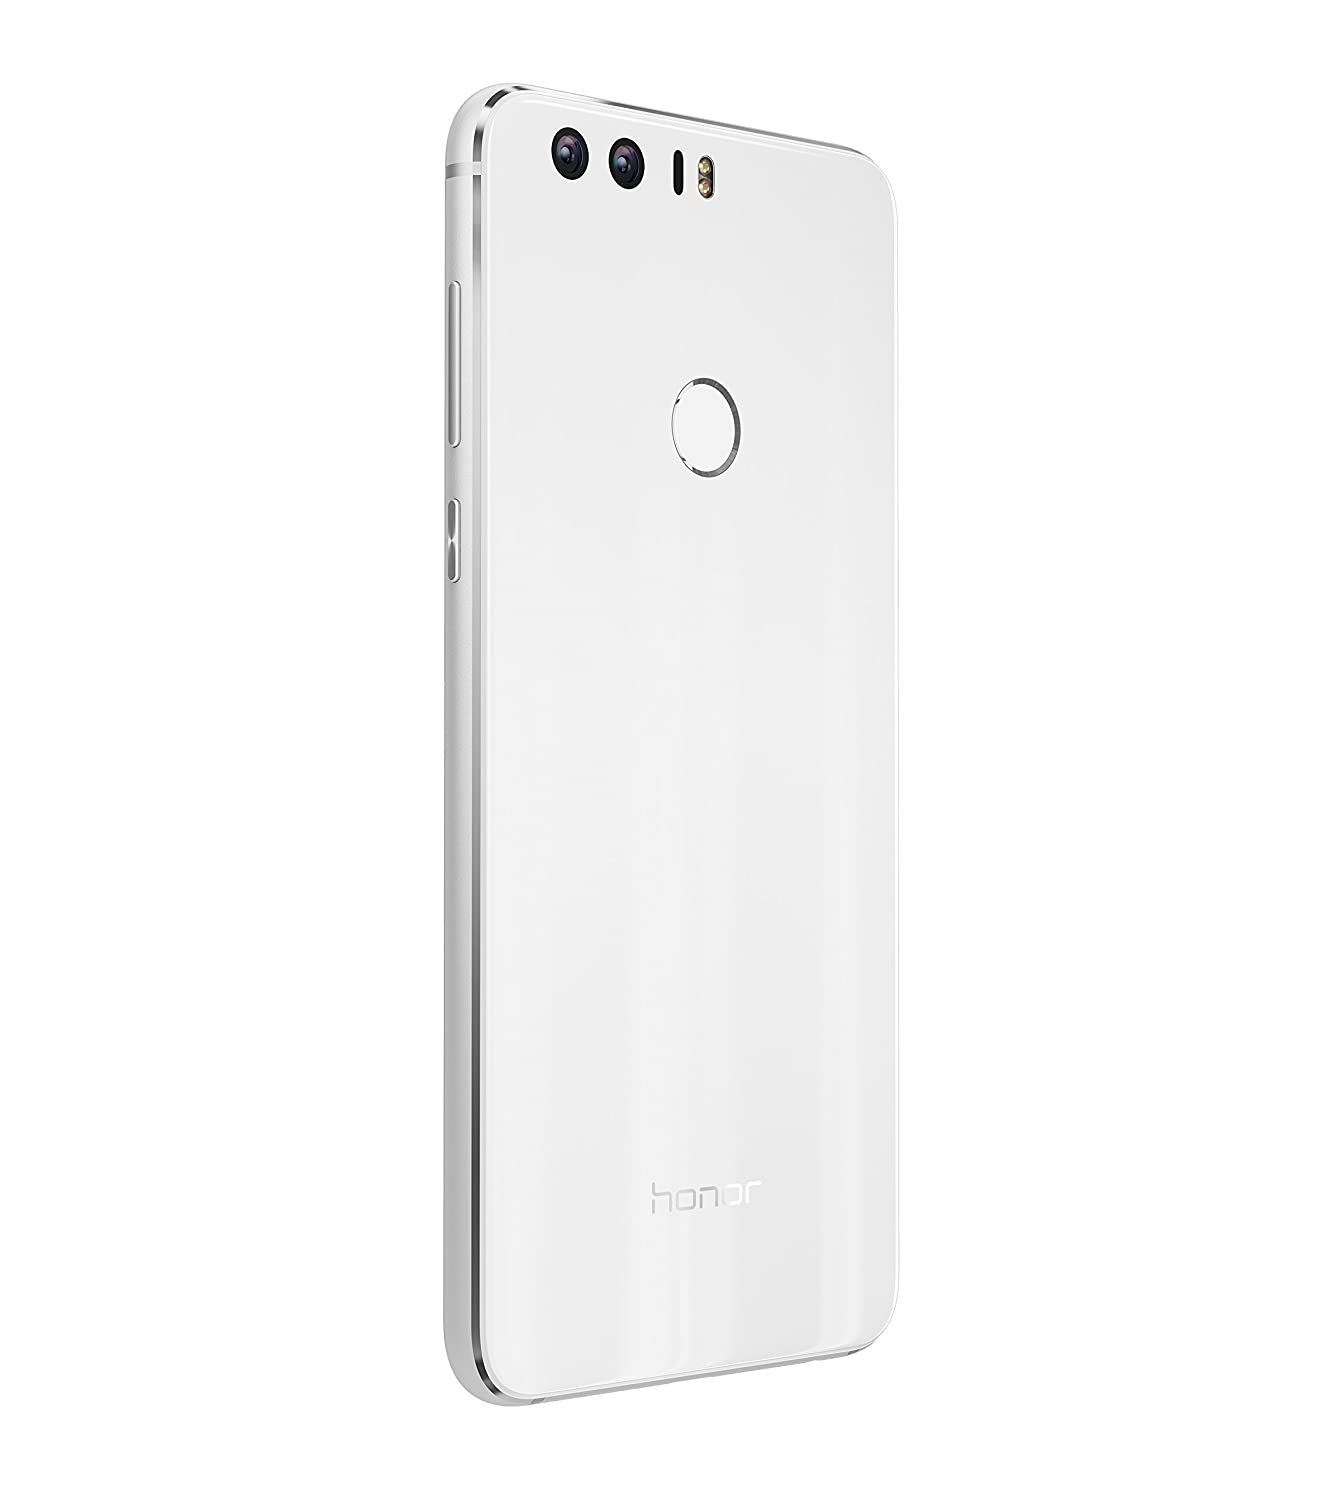 26a01325333e3 Amazon.com  Huawei Honor 8 32GB 5.2 Inch Display 12MP Rear Dual Camera  Smart Phone International Version - White  Cell Phones   Accessories